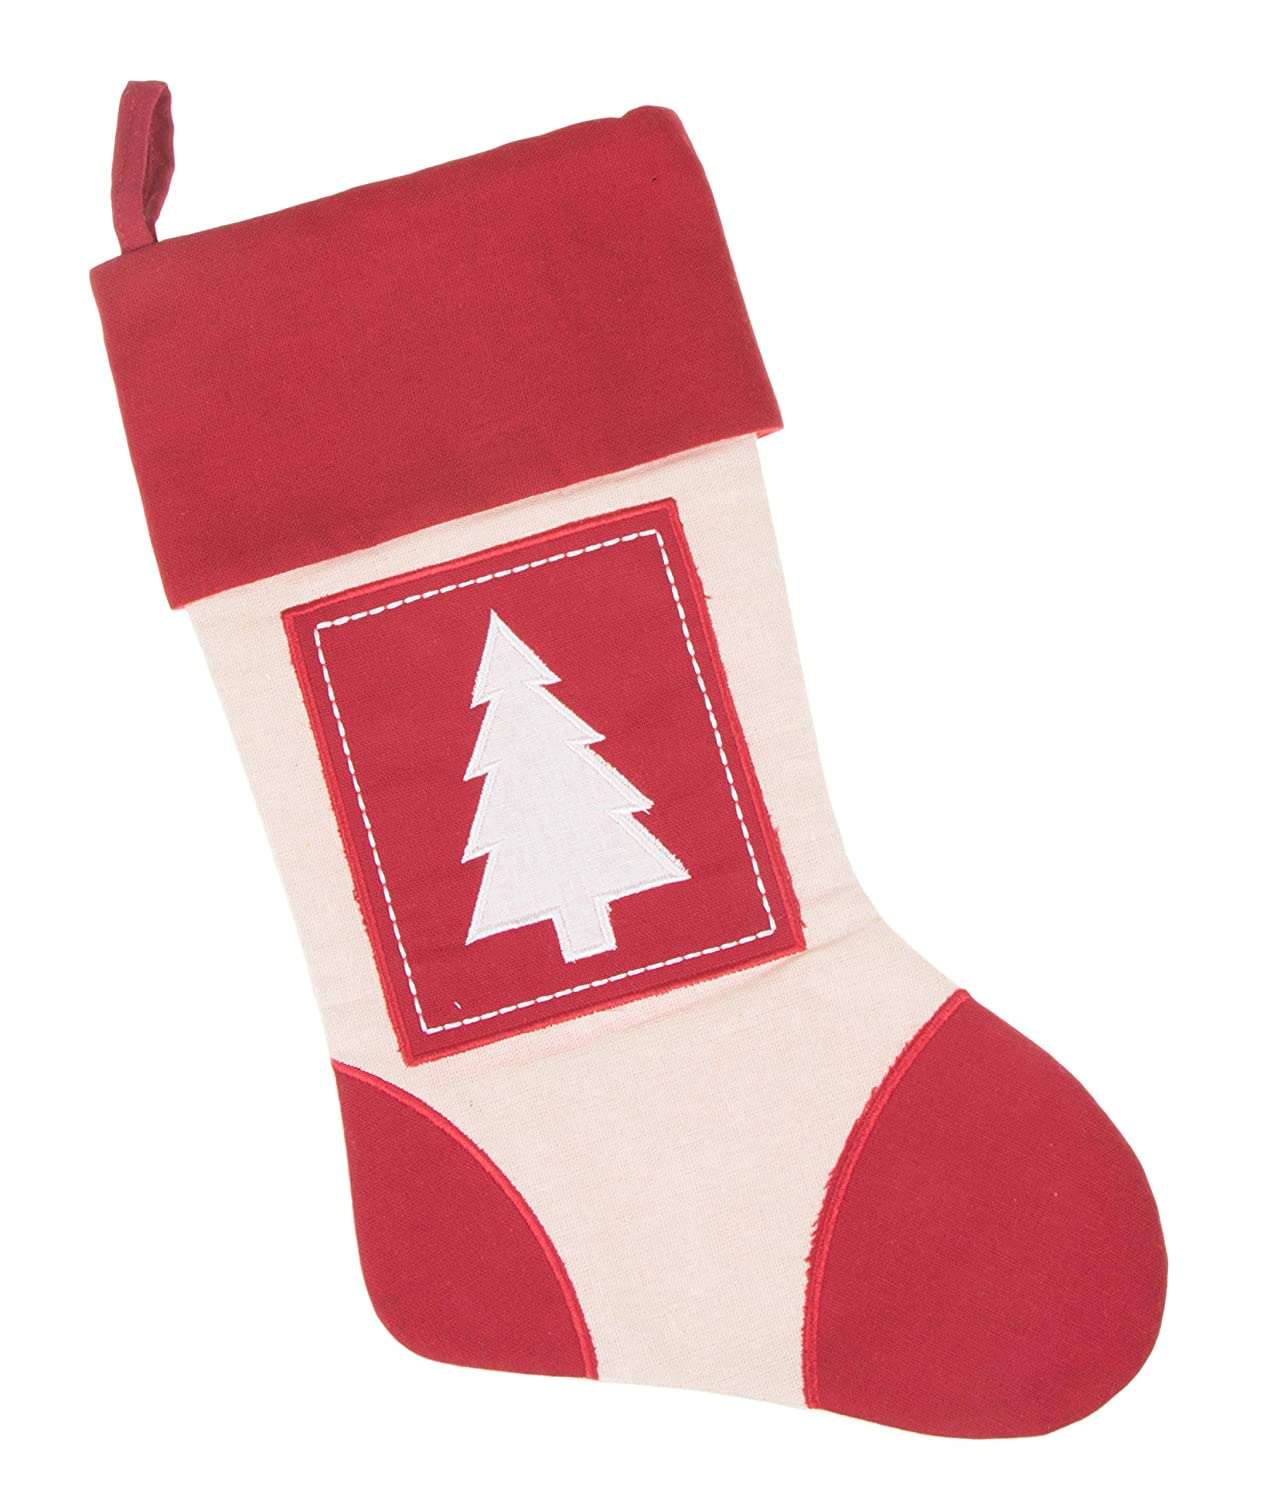 "Boxed Tree Canvas Christmas Stocking by Clever Creations | Beautiful Tree Applique Design | Soft Woven Material | Festive Holiday Décor | Traditional Theme | Easy to Personalize | Measures 16"" Tall No Model"